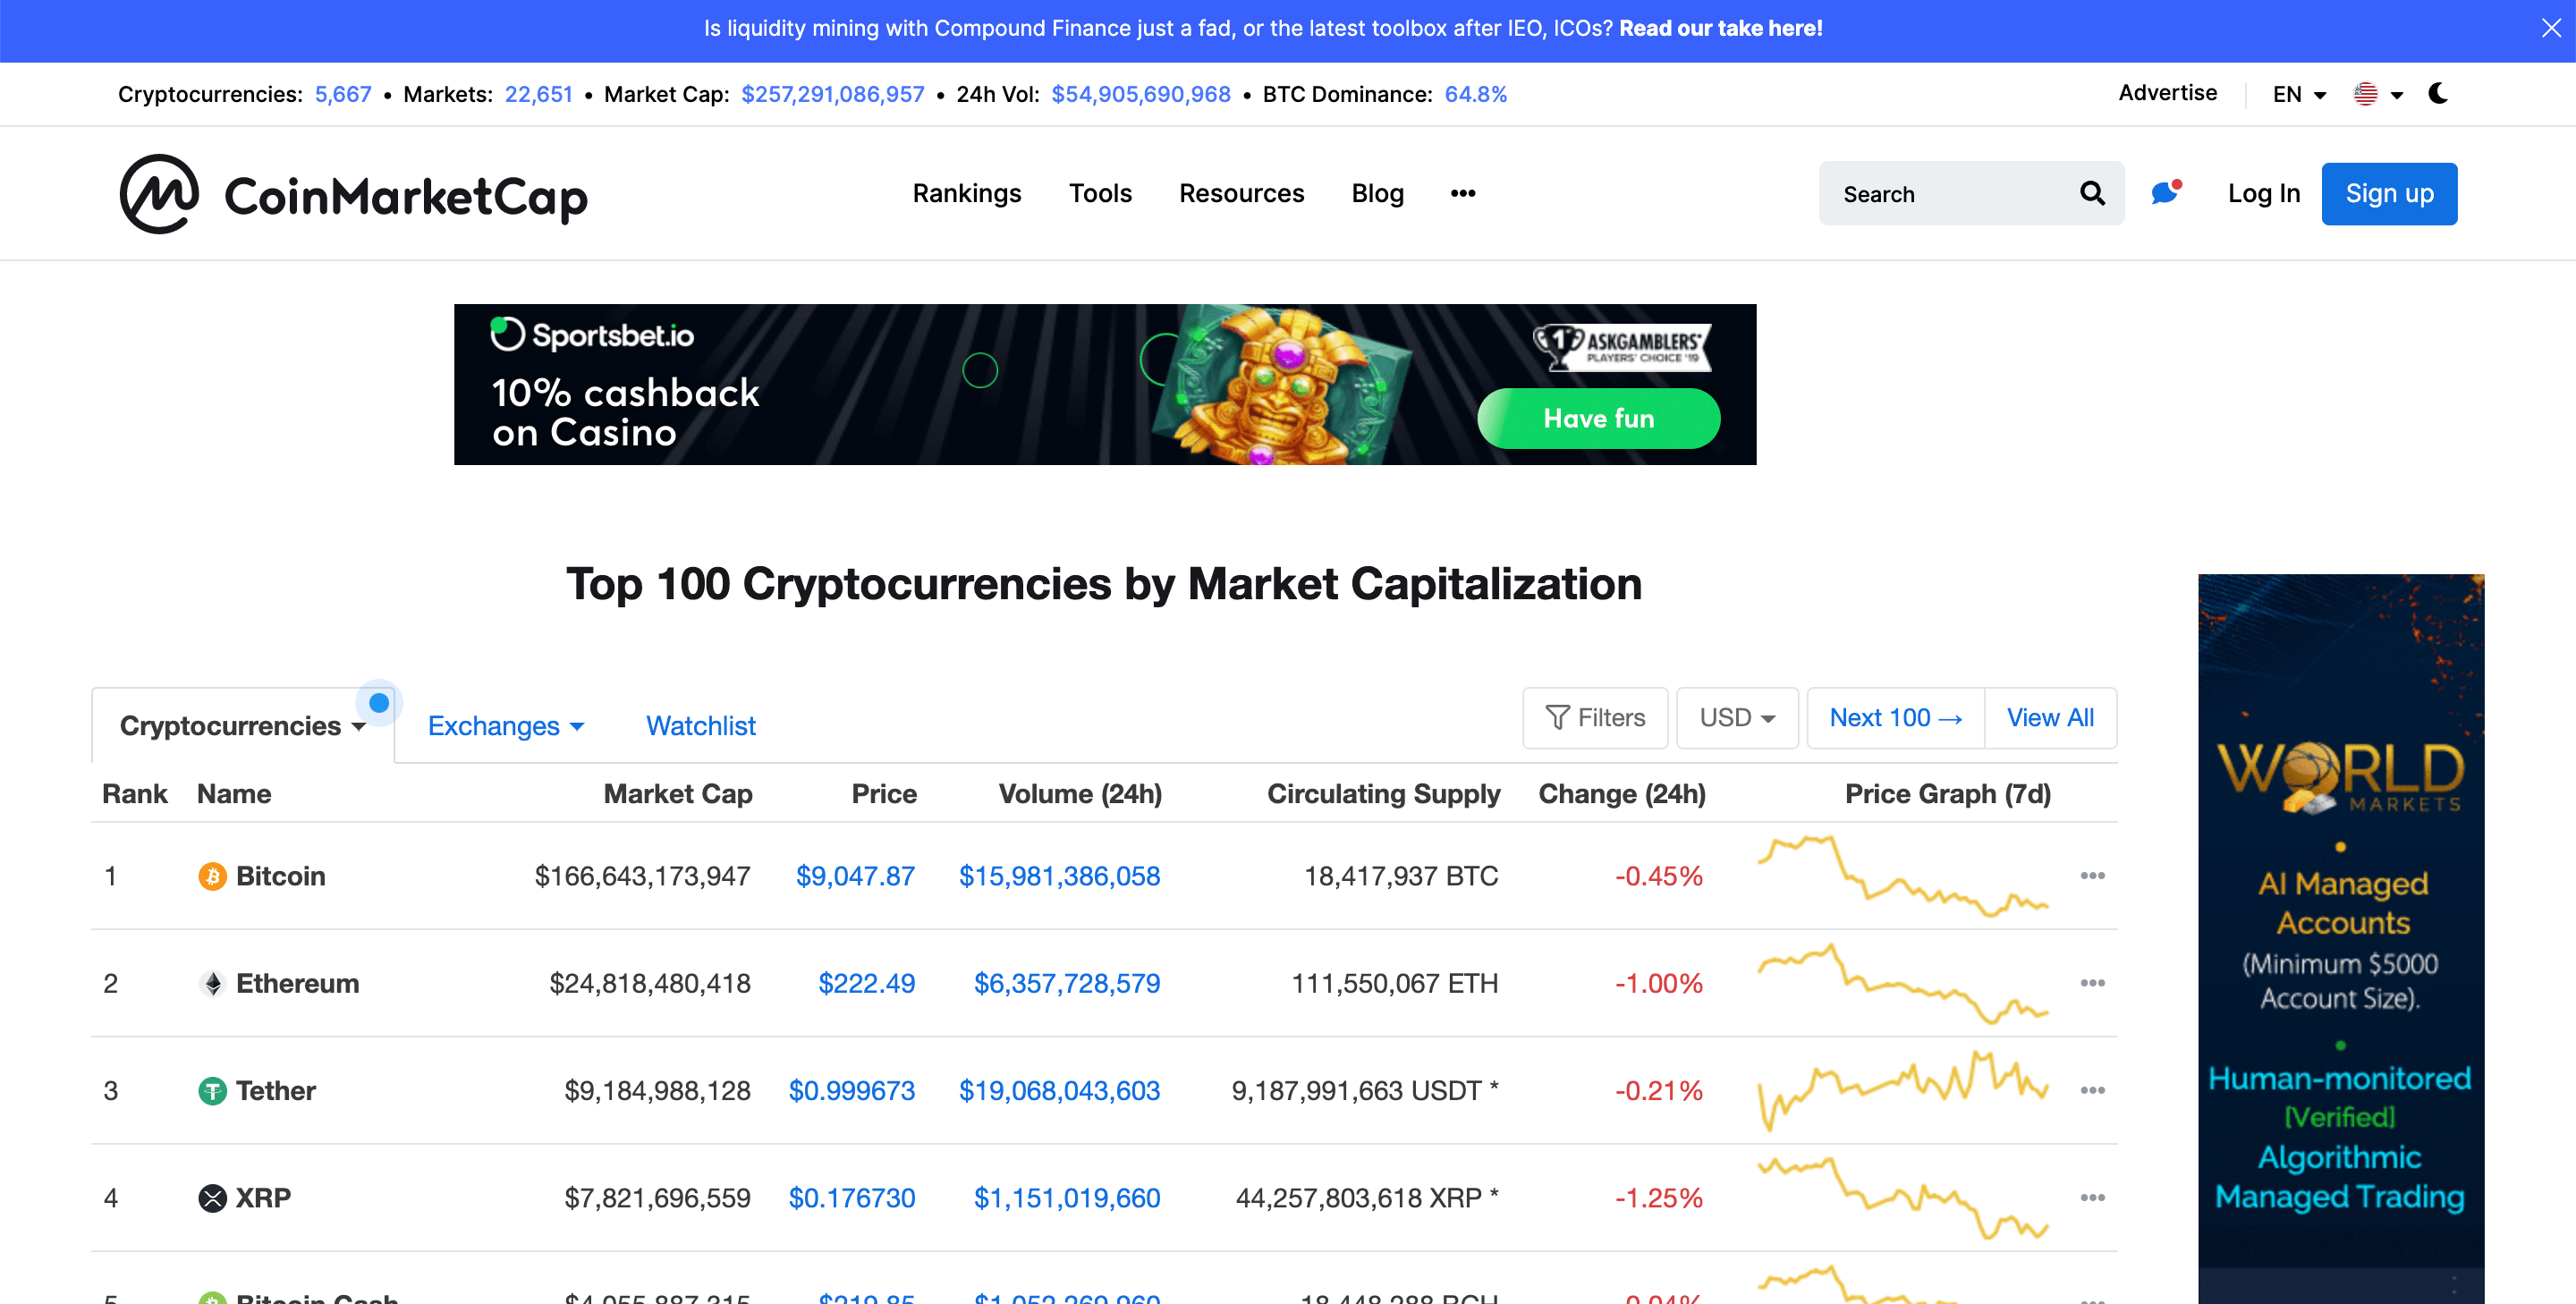 Coinmarketcap API is now the most popular cryptocurrency API